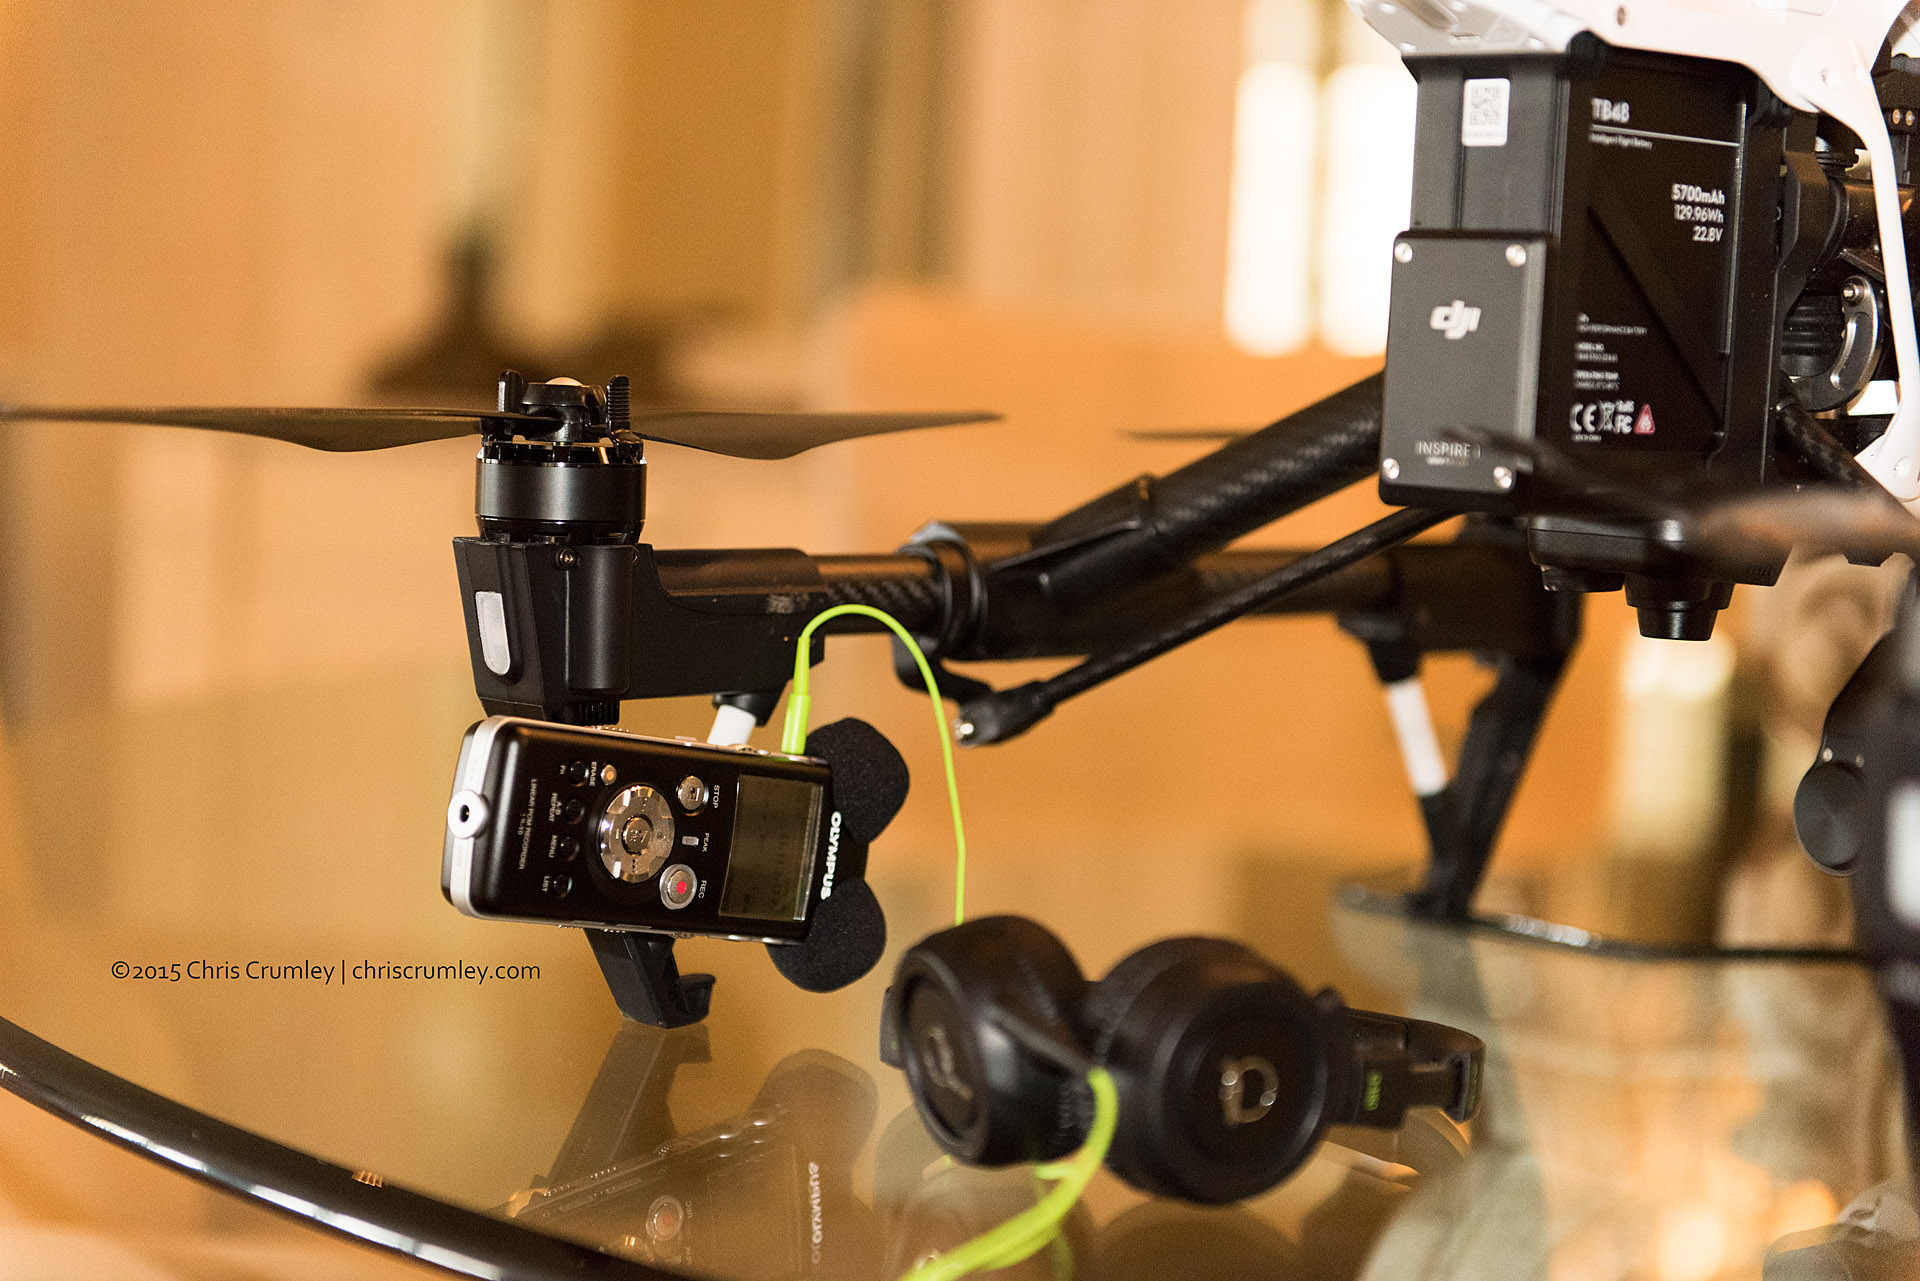 DJI Inspire 1 Rigged for Audio